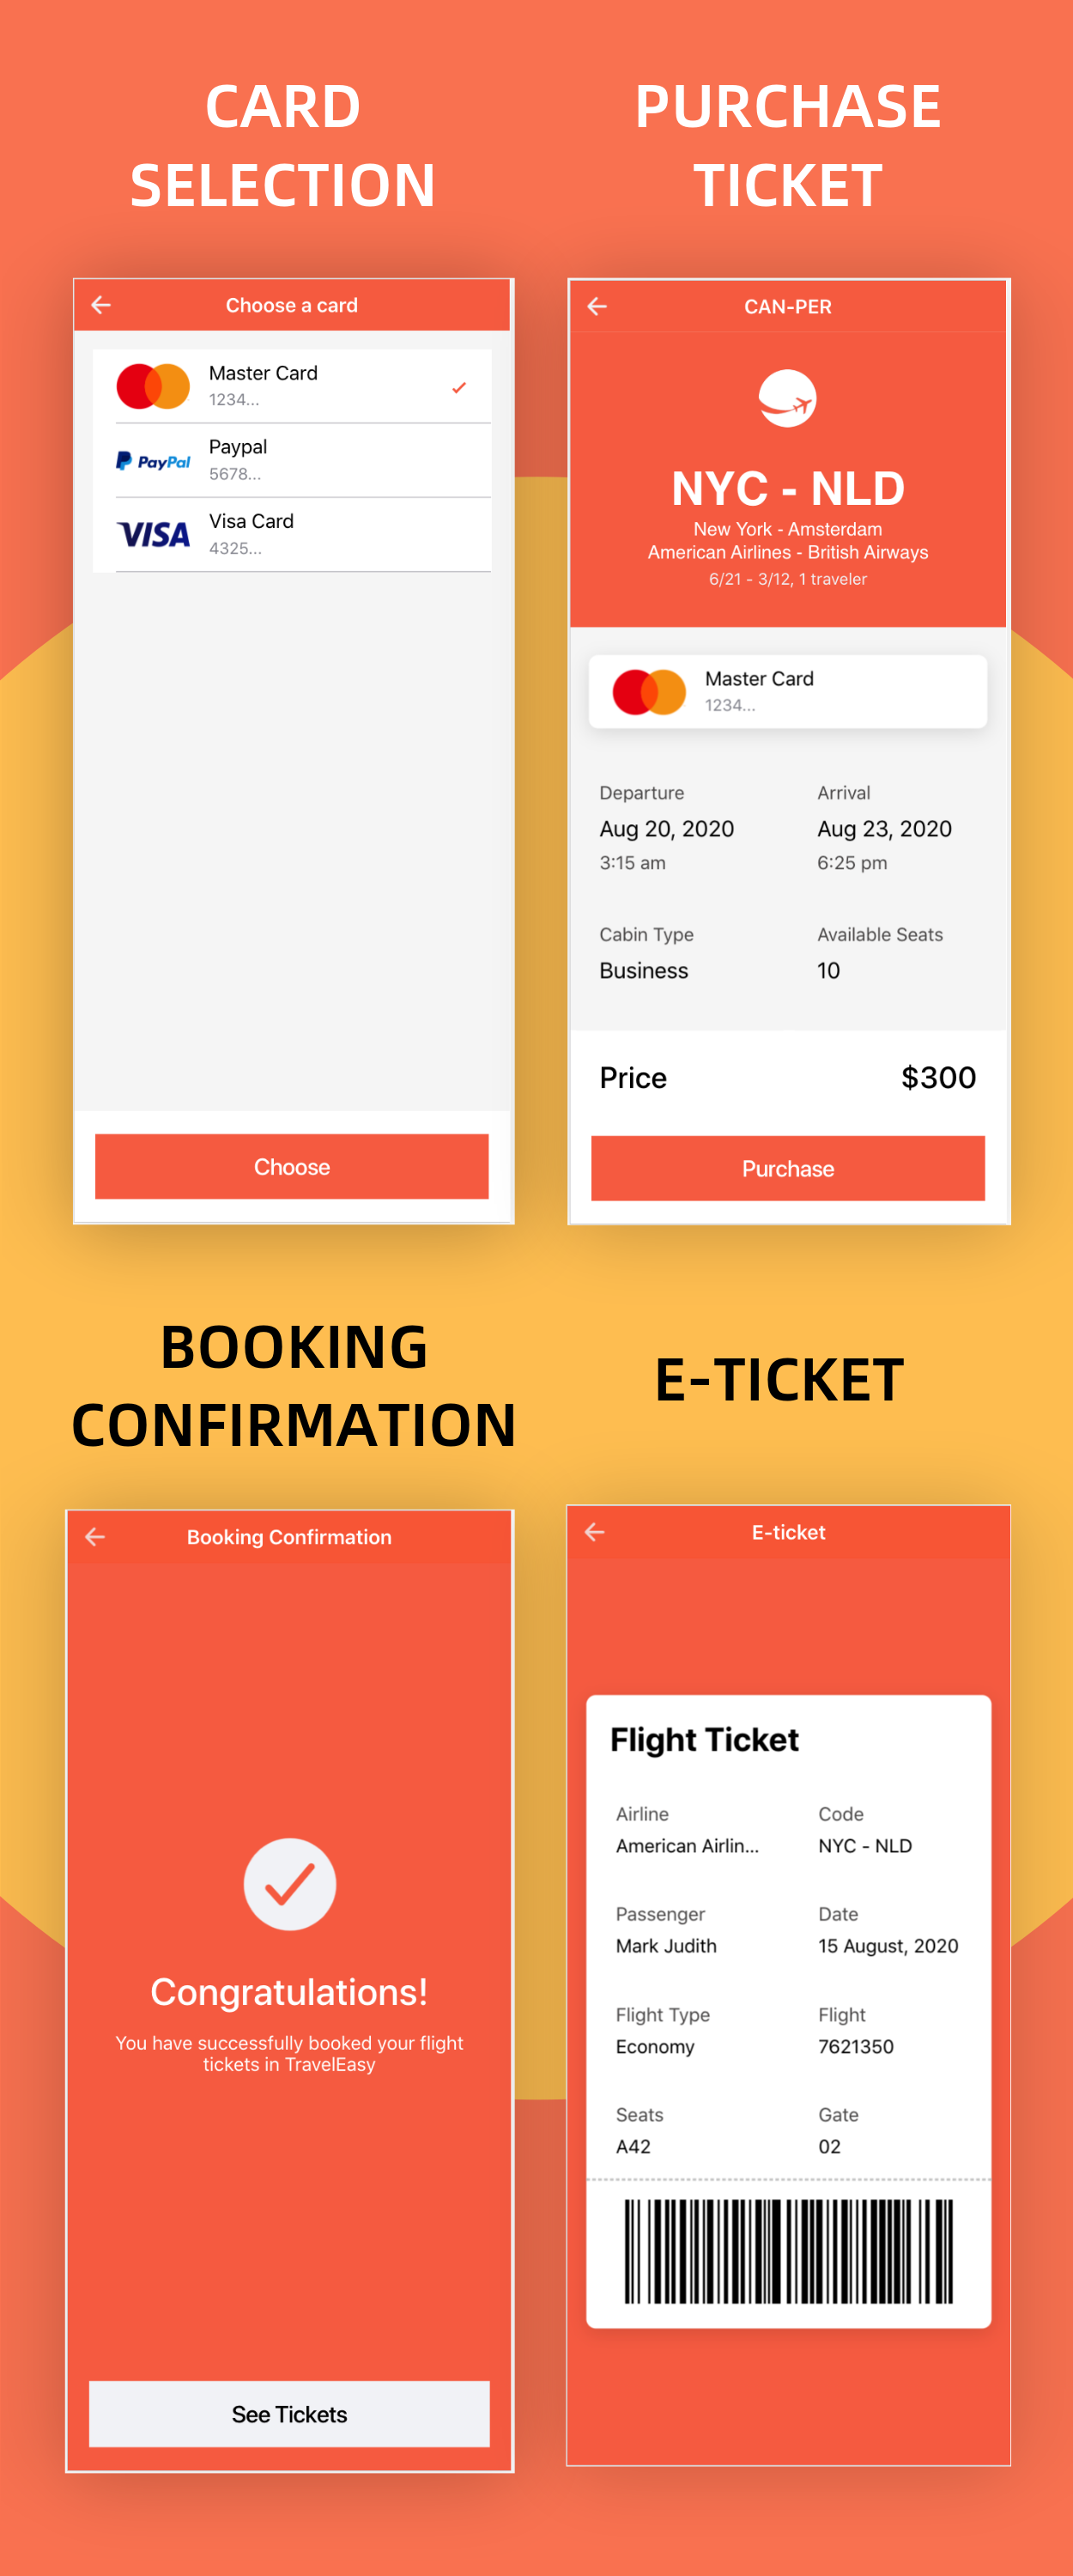 TravelEasy - A Travel Agency Theme UI App By Ionic 5 (Car, Hotel, Flight Booking) - 11